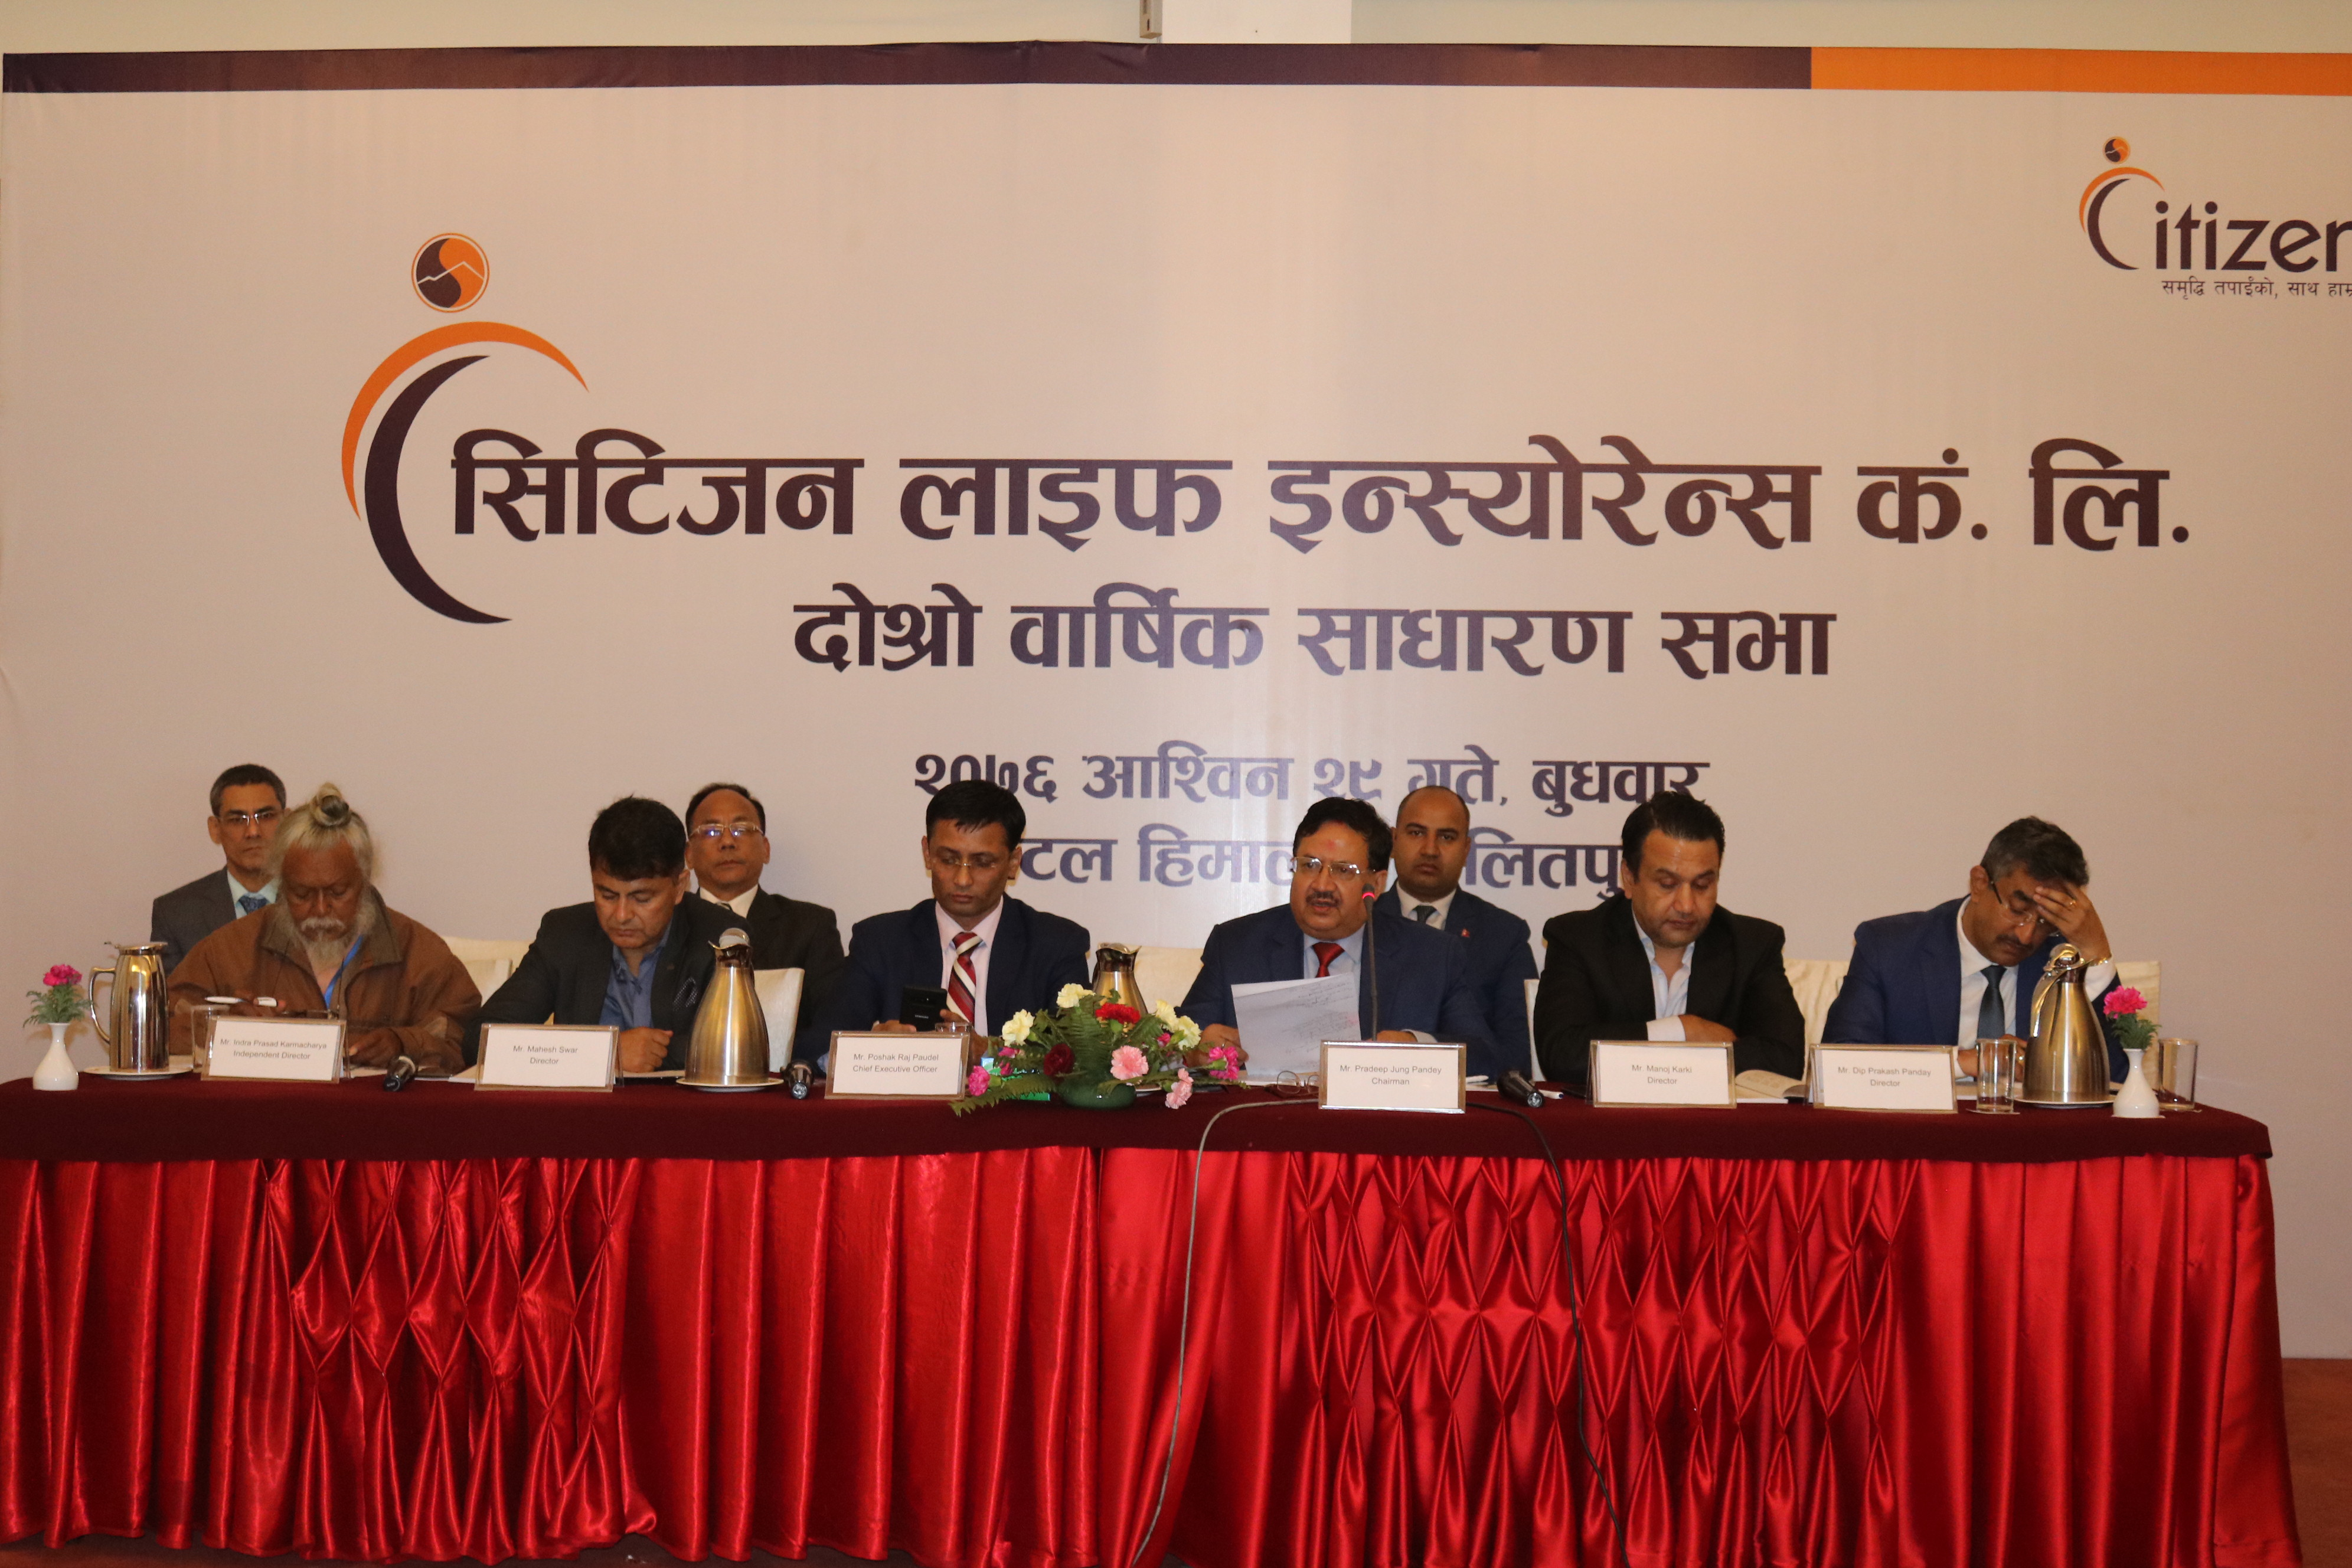 2nd AGM of Citizen Life Insurance Convened